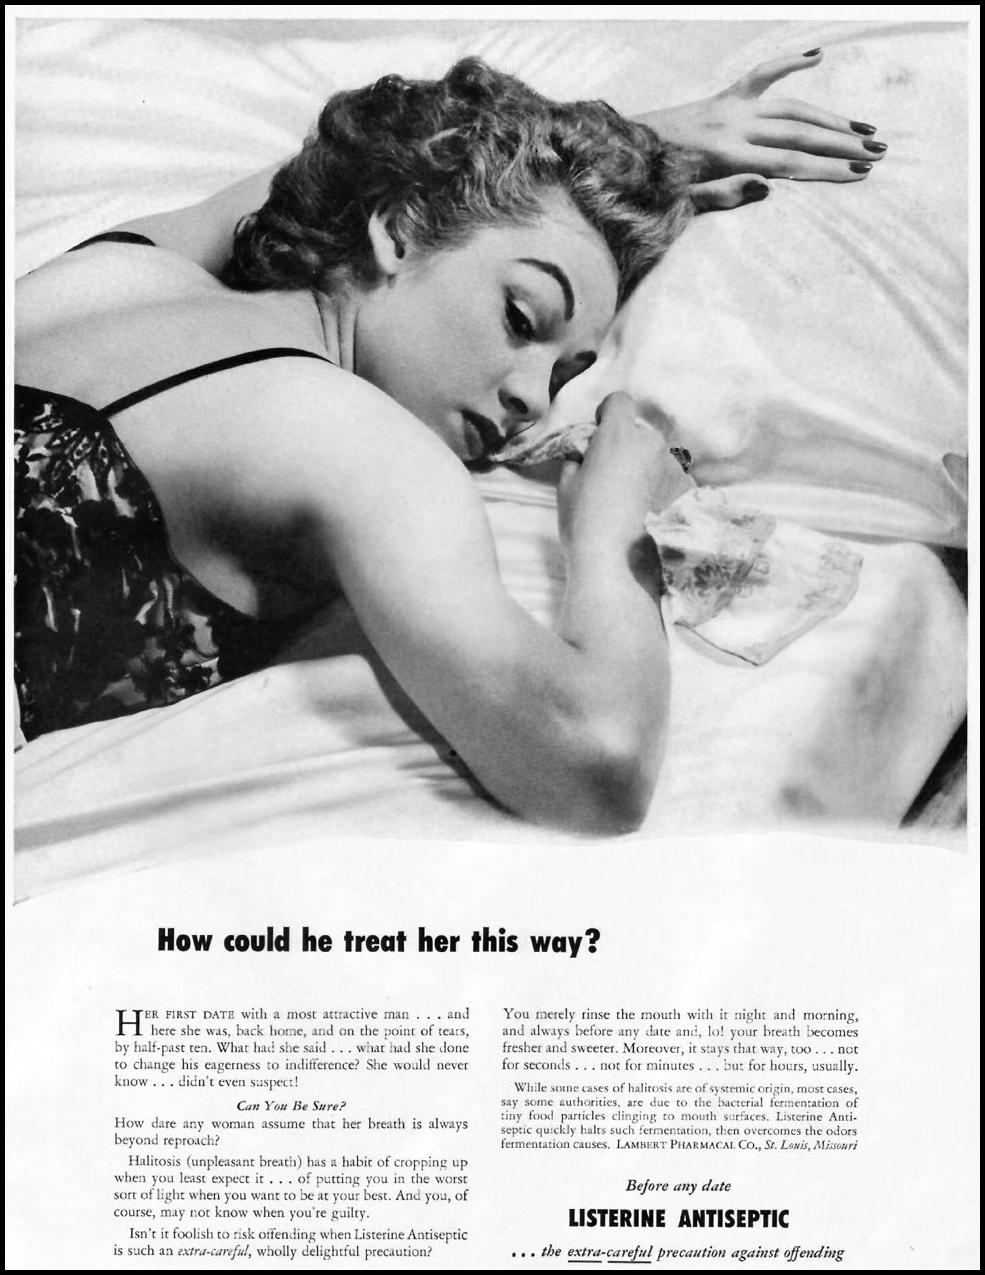 LISTERINE ANTISEPTIC LADIES' HOME JOURNAL 11/01/1950 p. 9